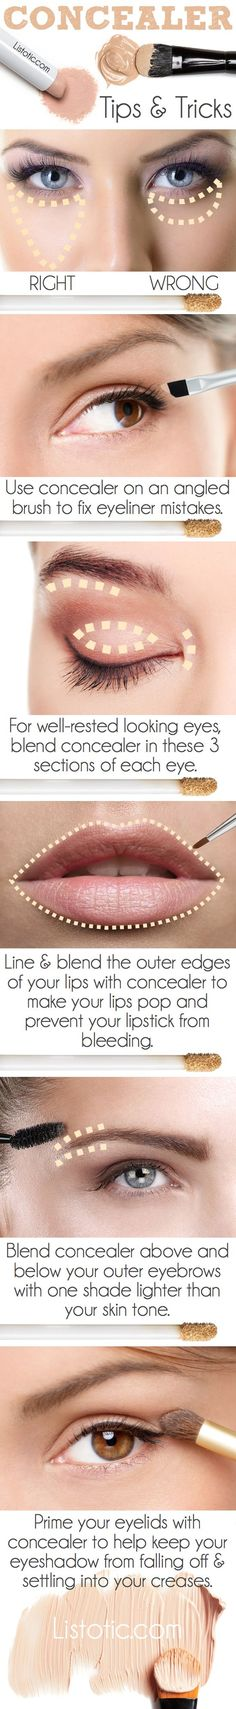 A handy infographic showing you how to apply concealer properly #makeuptips...x